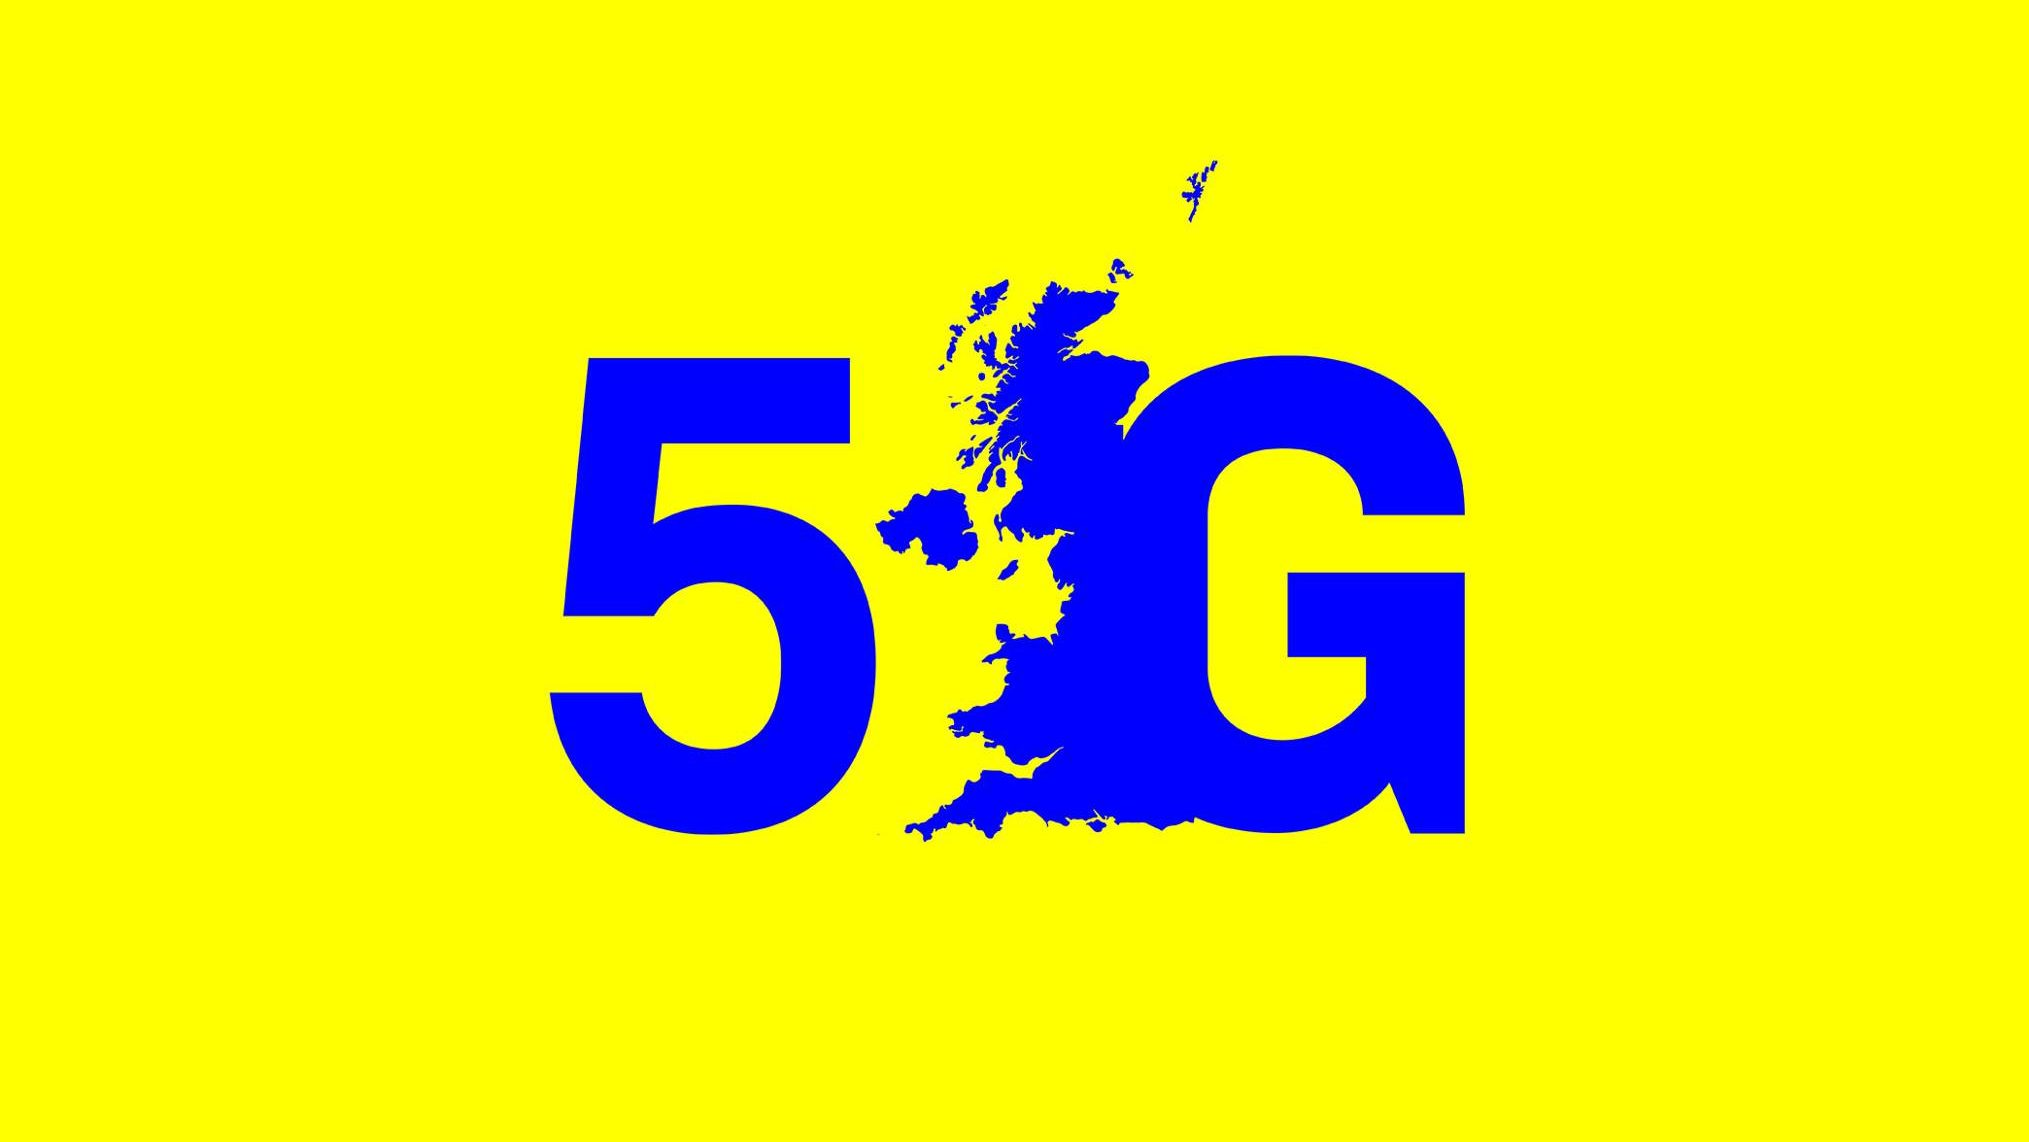 UK 5G roll-out